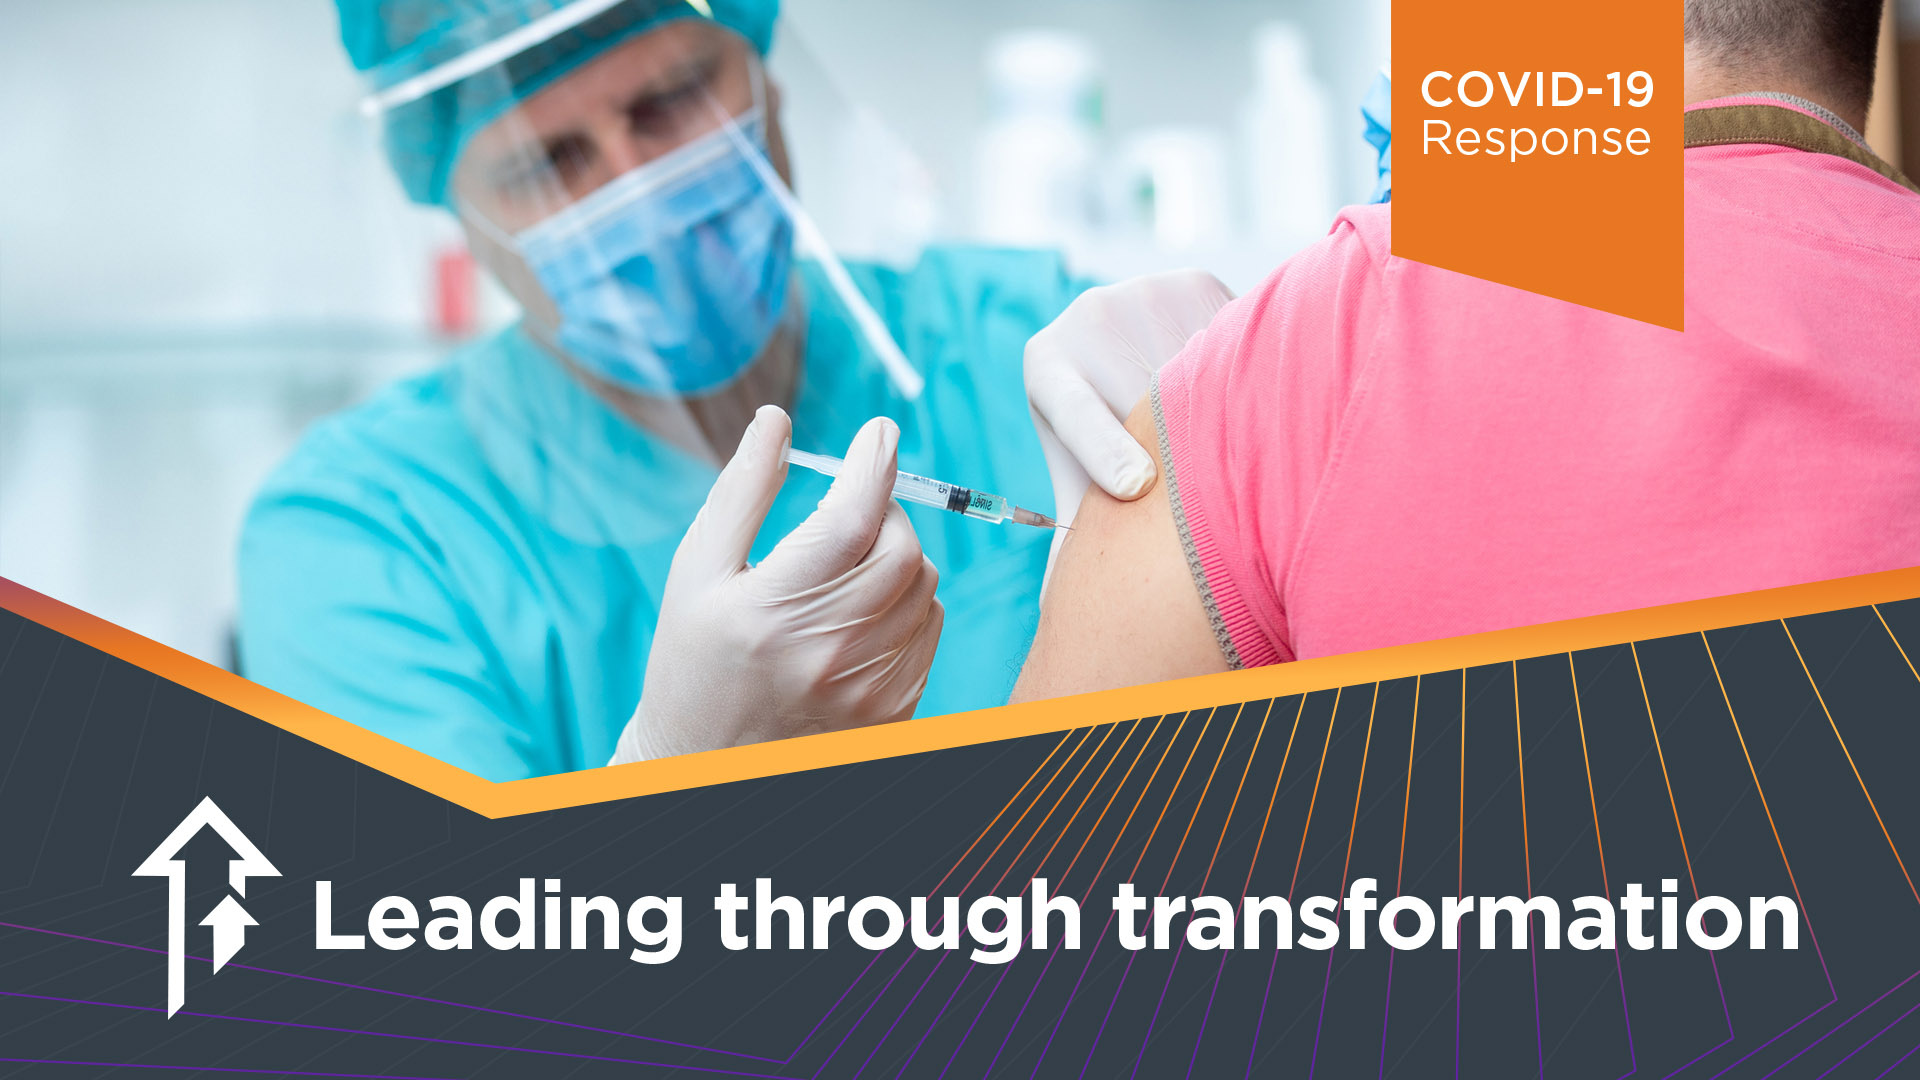 COVID-19 Response Leading through transformation